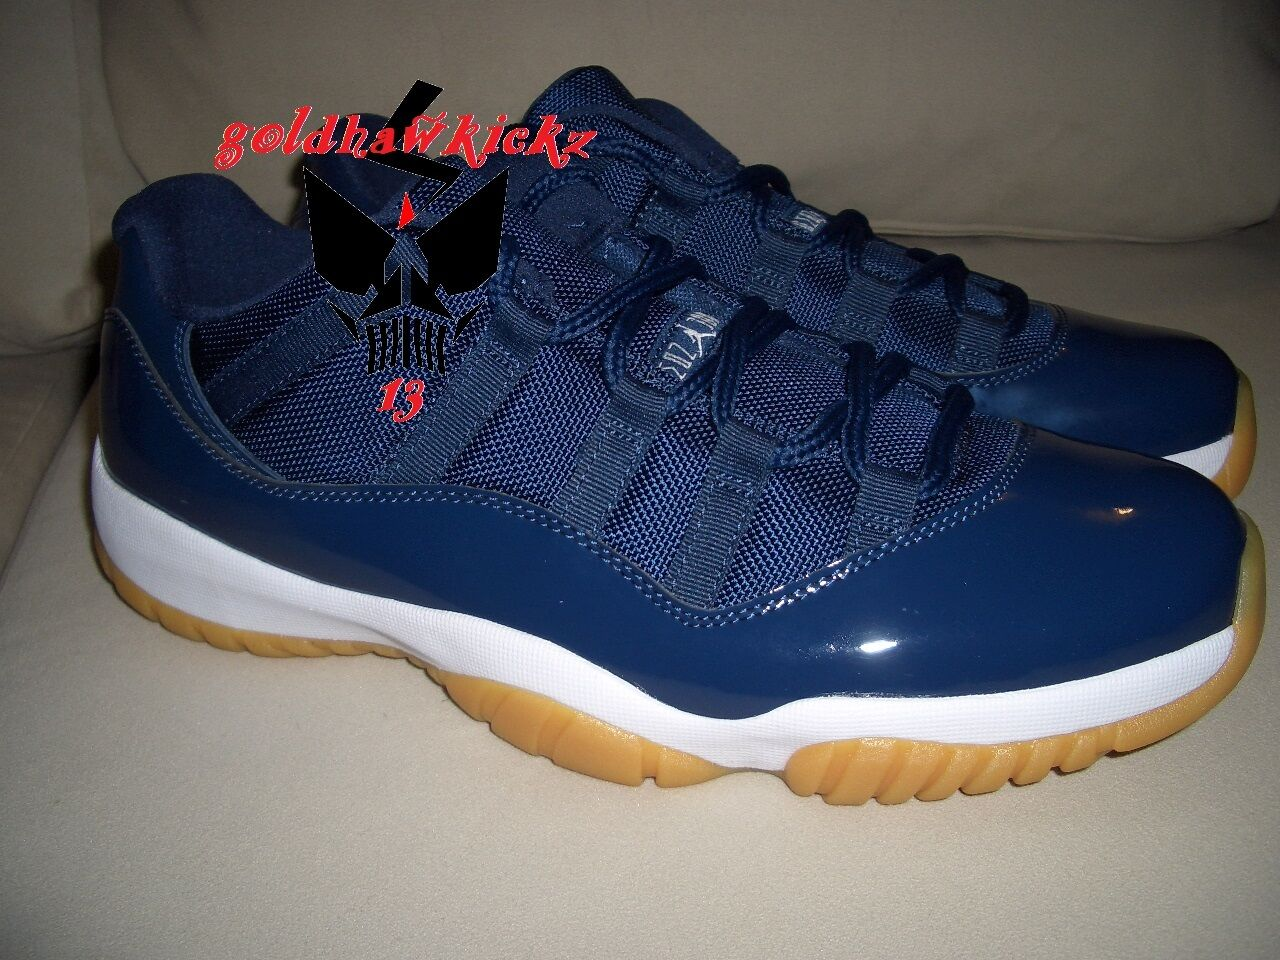 2018 Nike Air Jordan 11 XI Retro Low Midnight Navy Gum sole  Bleu